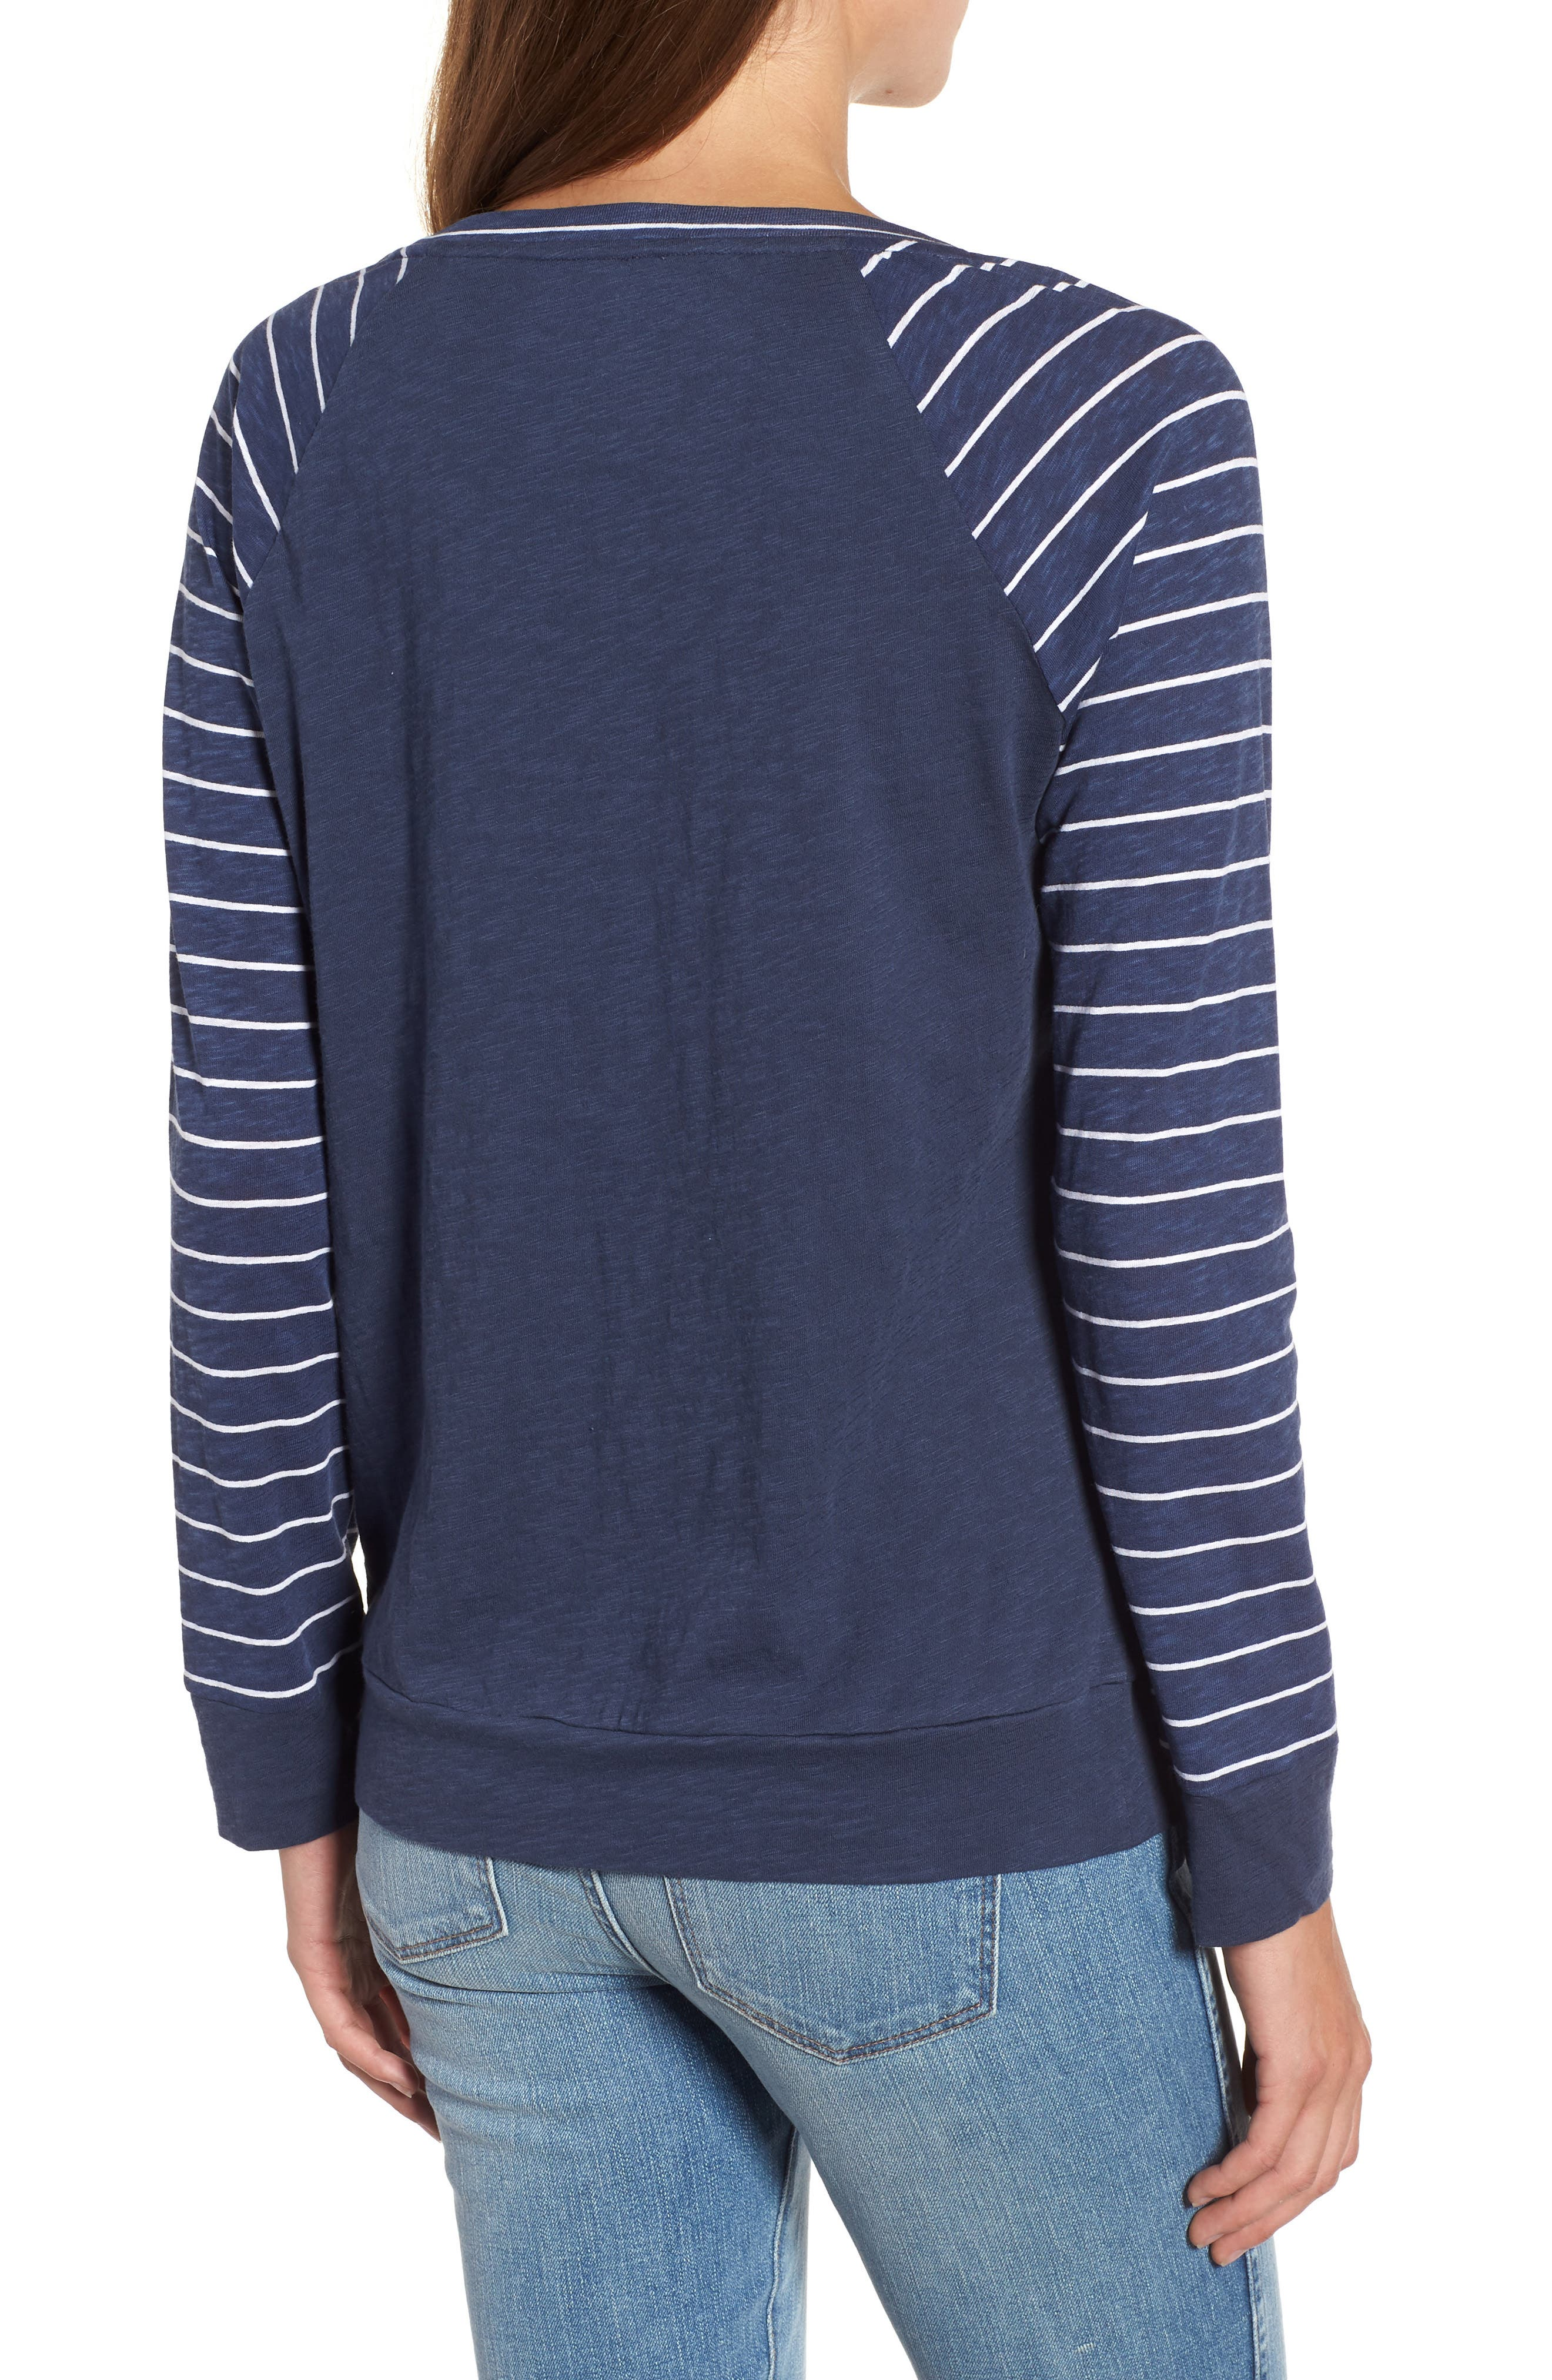 Lightweight Colorblock Cotton Tee,                             Alternate thumbnail 15, color,                             Navy- White